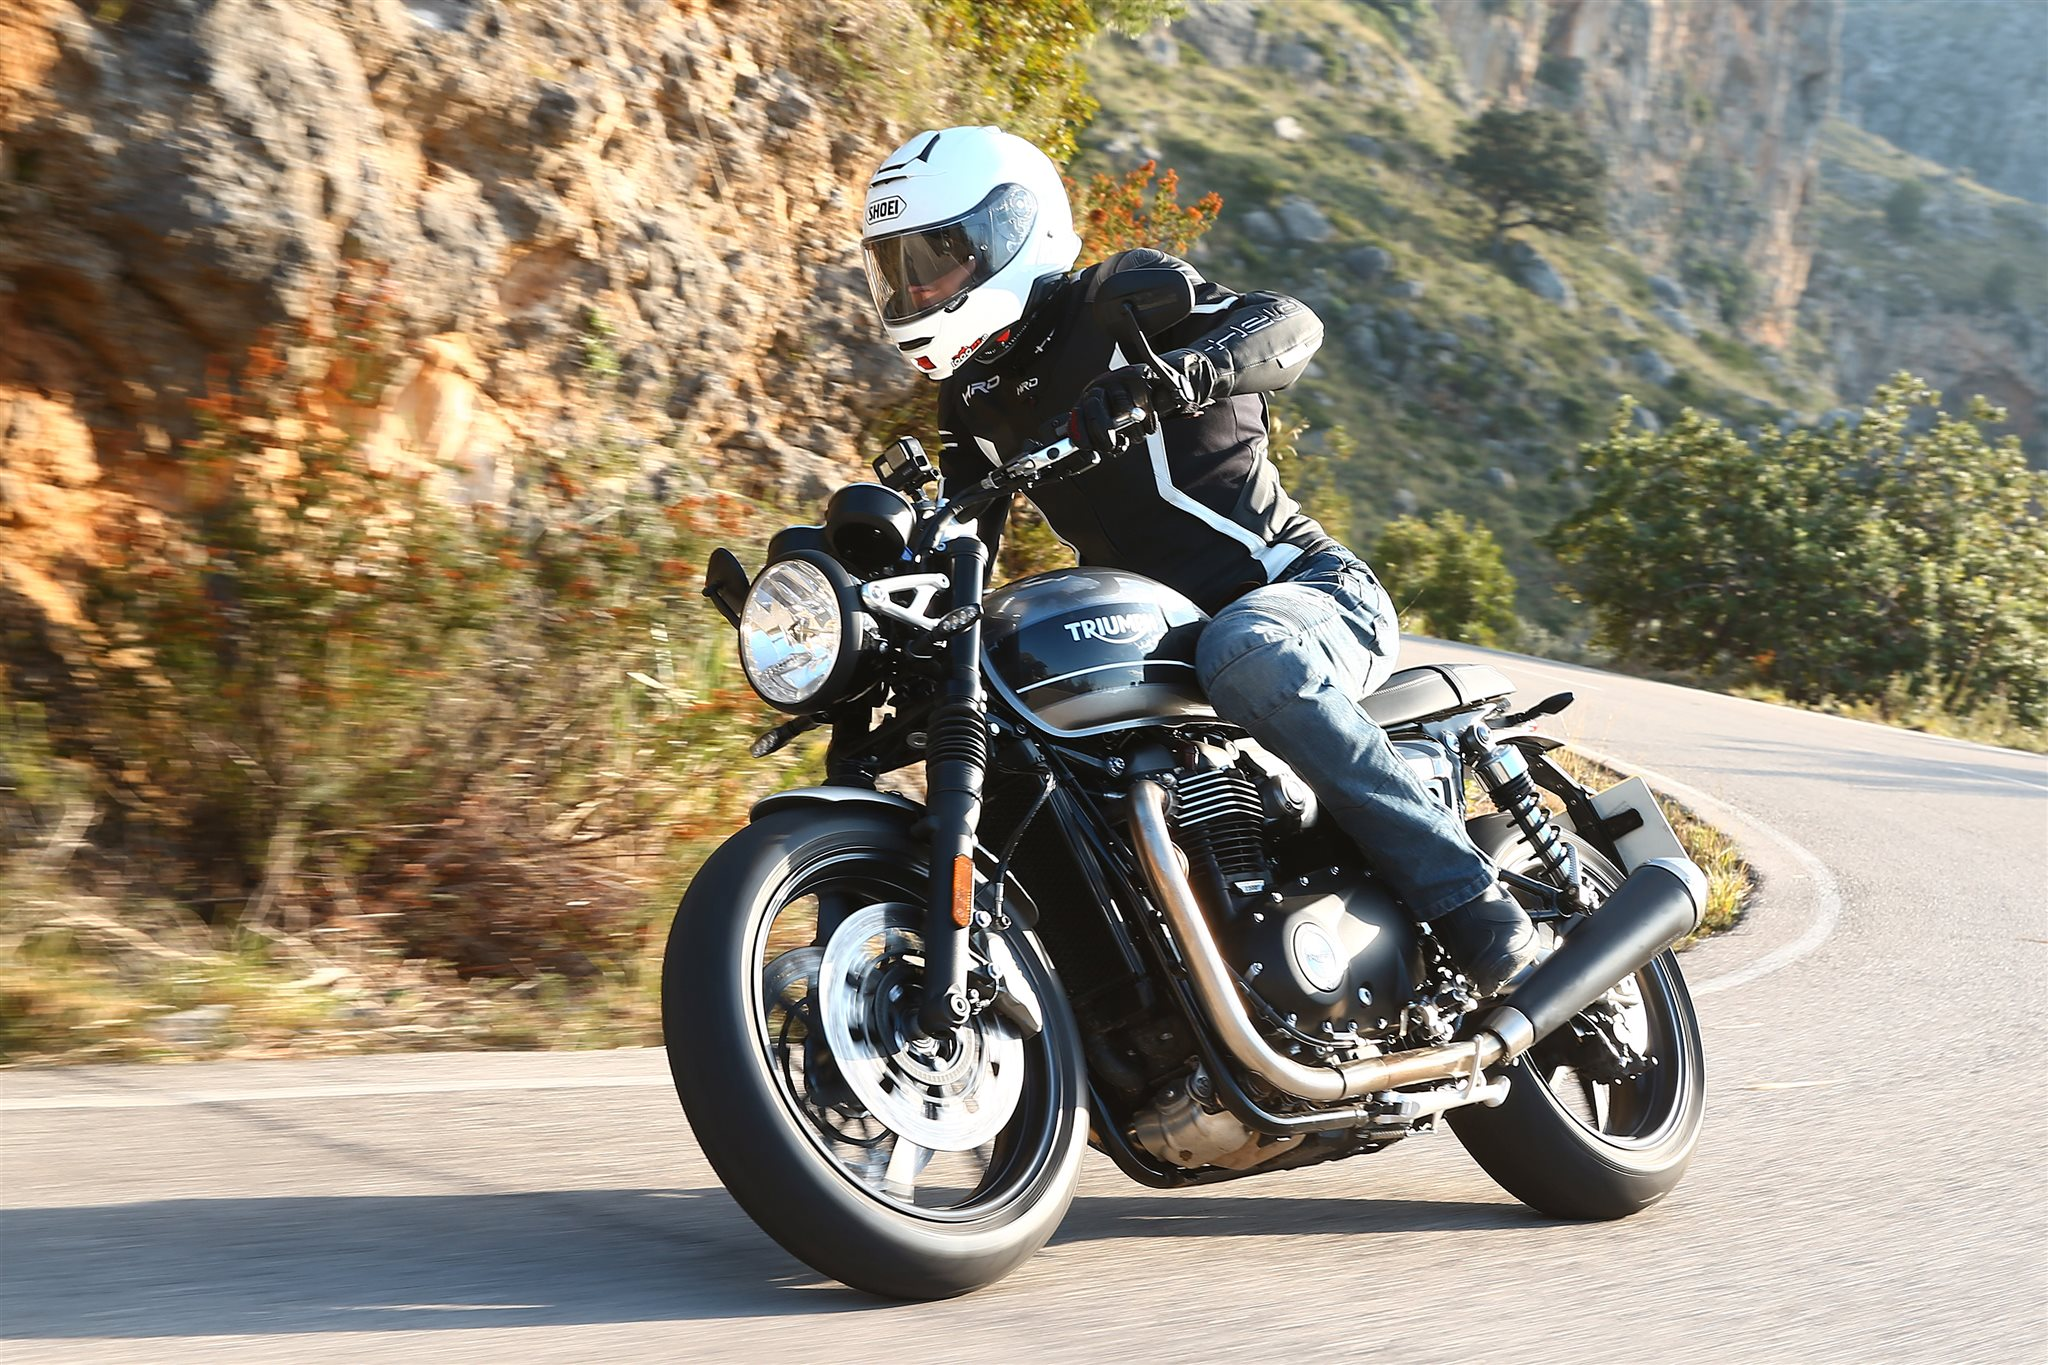 triumph speed twin 1200 2019 test auf mallorca testbericht. Black Bedroom Furniture Sets. Home Design Ideas